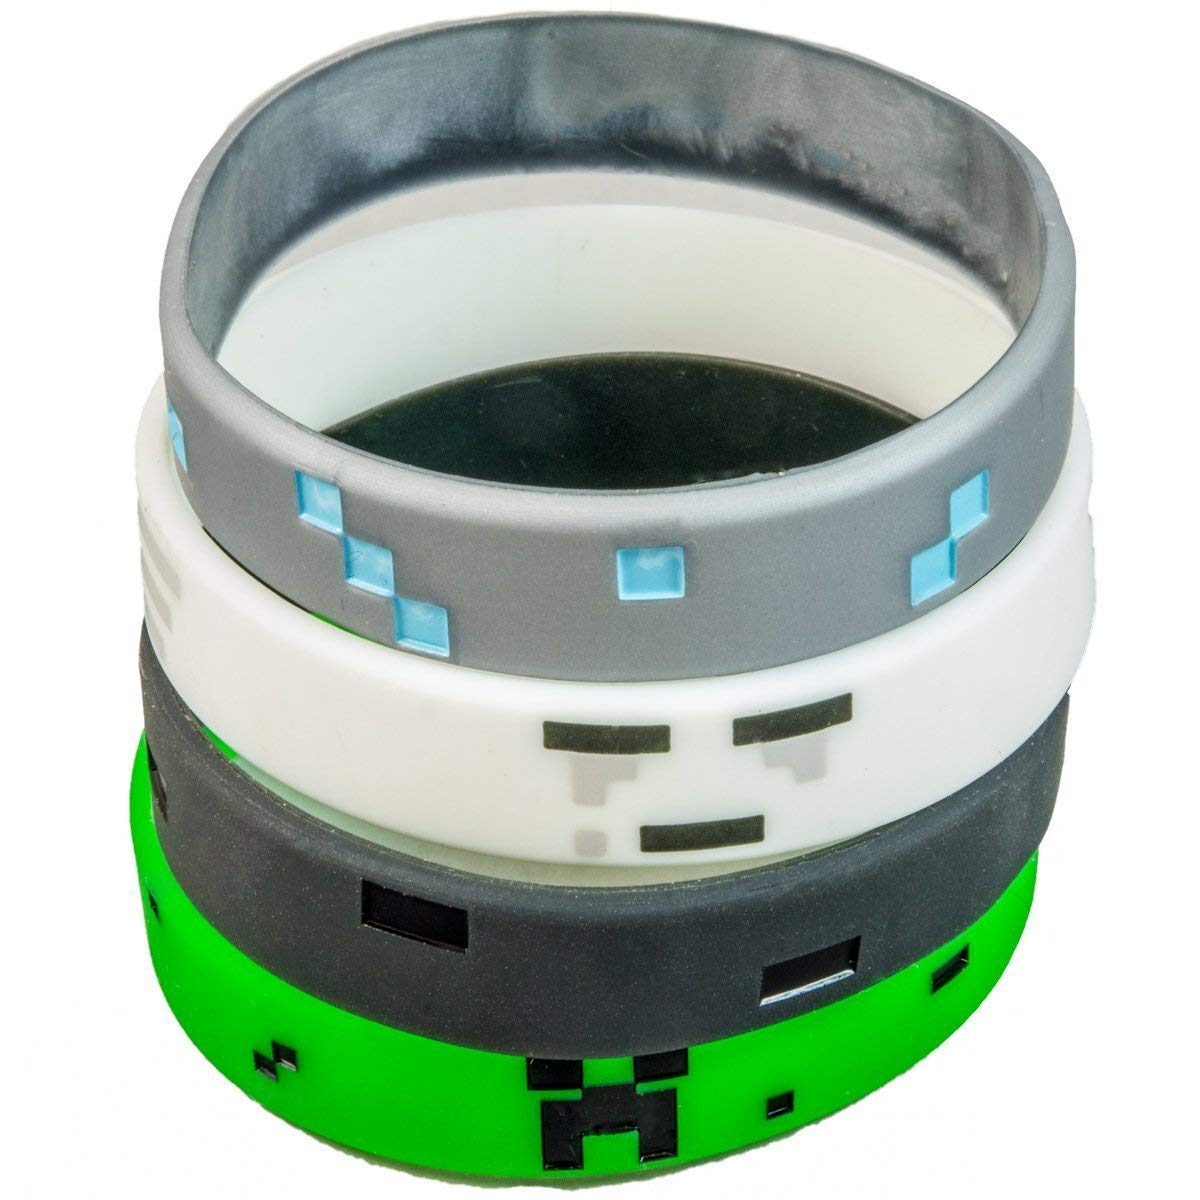 Pixelated video game styled wristbands